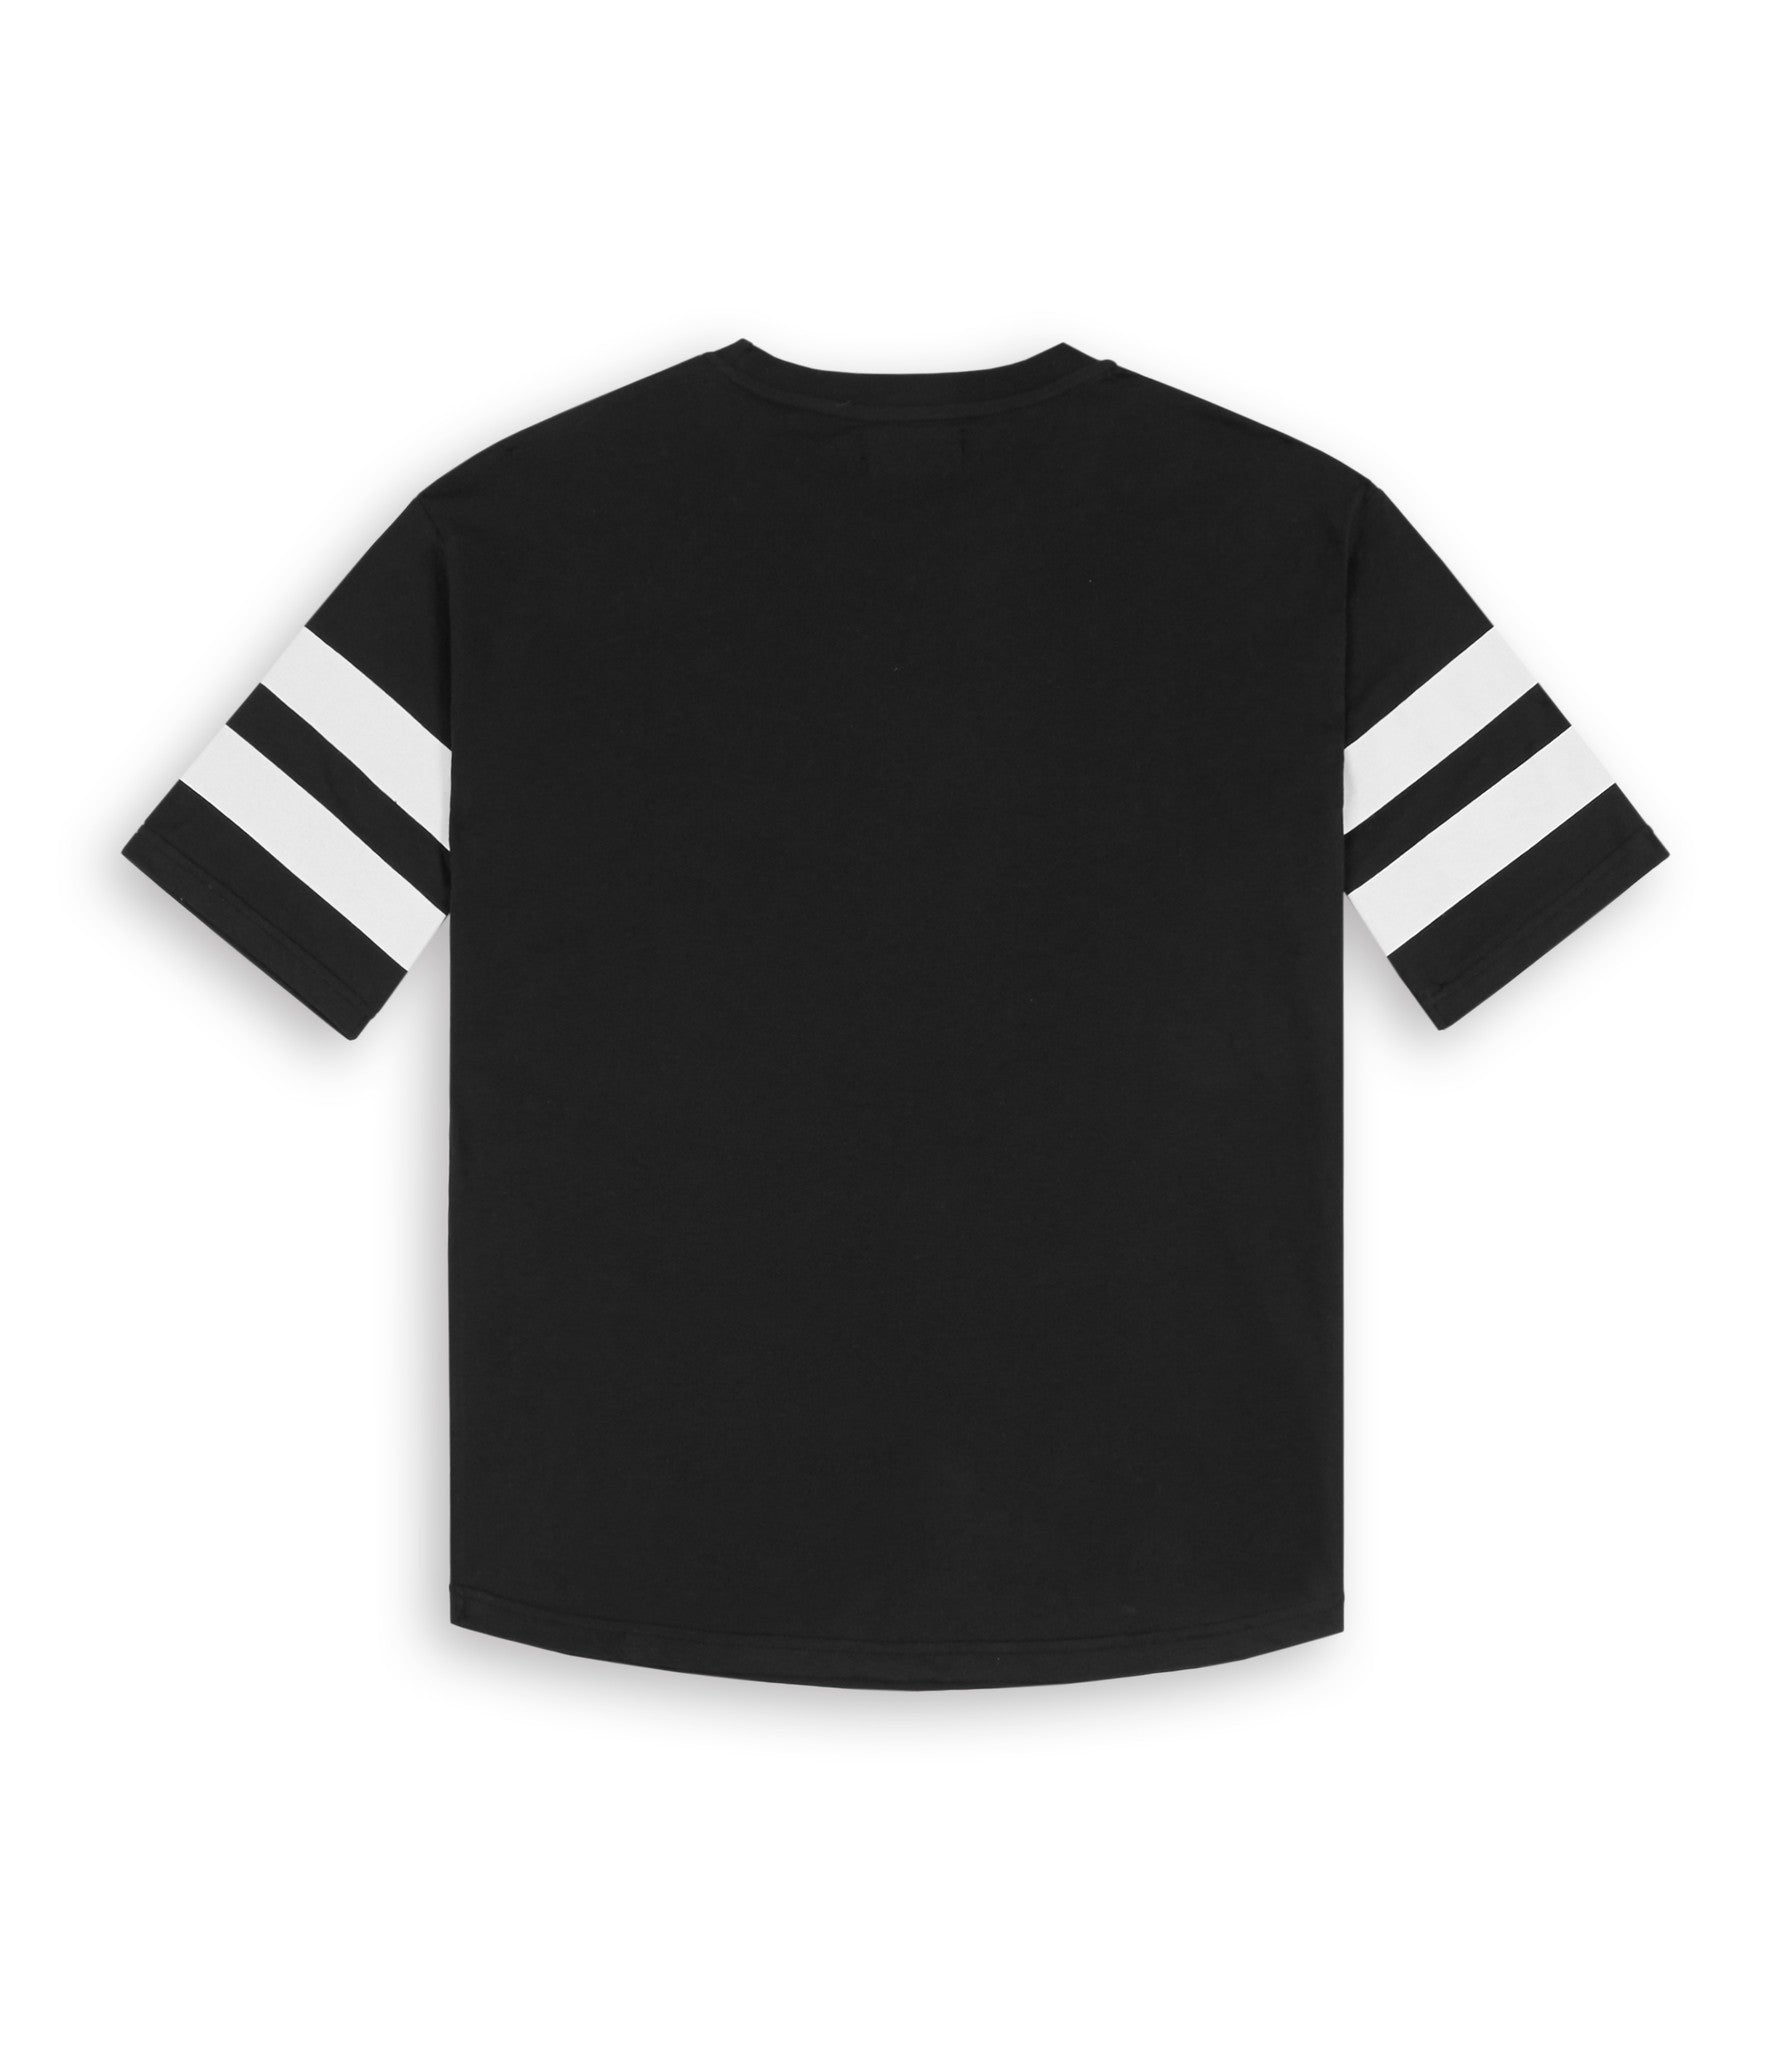 TS404 Print Tee - Black - underated london - underatedco - 4